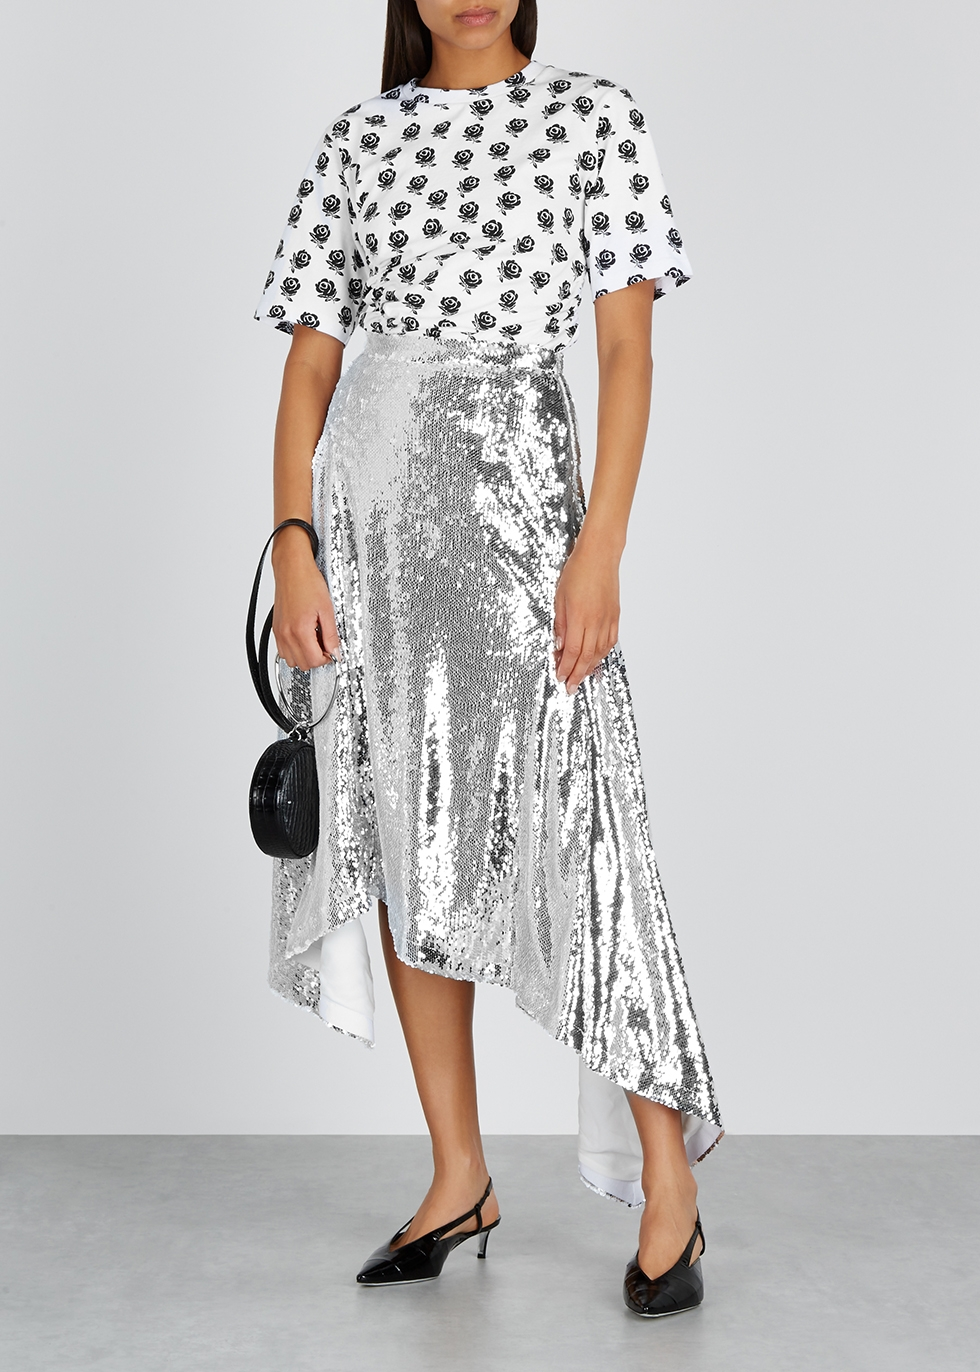 Silver sequin midi skirt - Walk of Shame